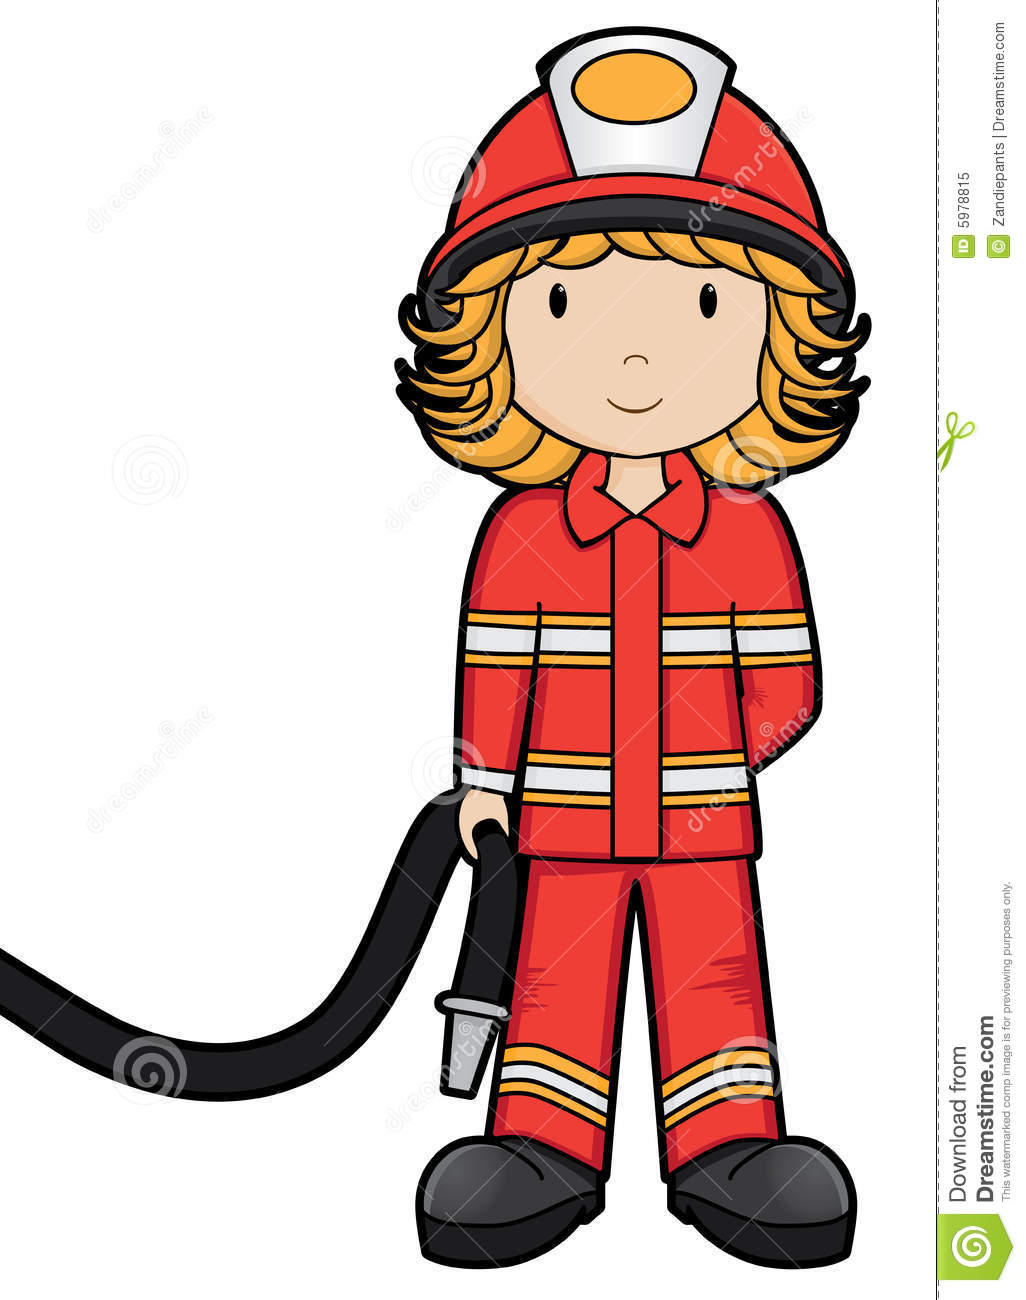 Fire Girl Vector Royalty Free Stock Photo Image 5978815